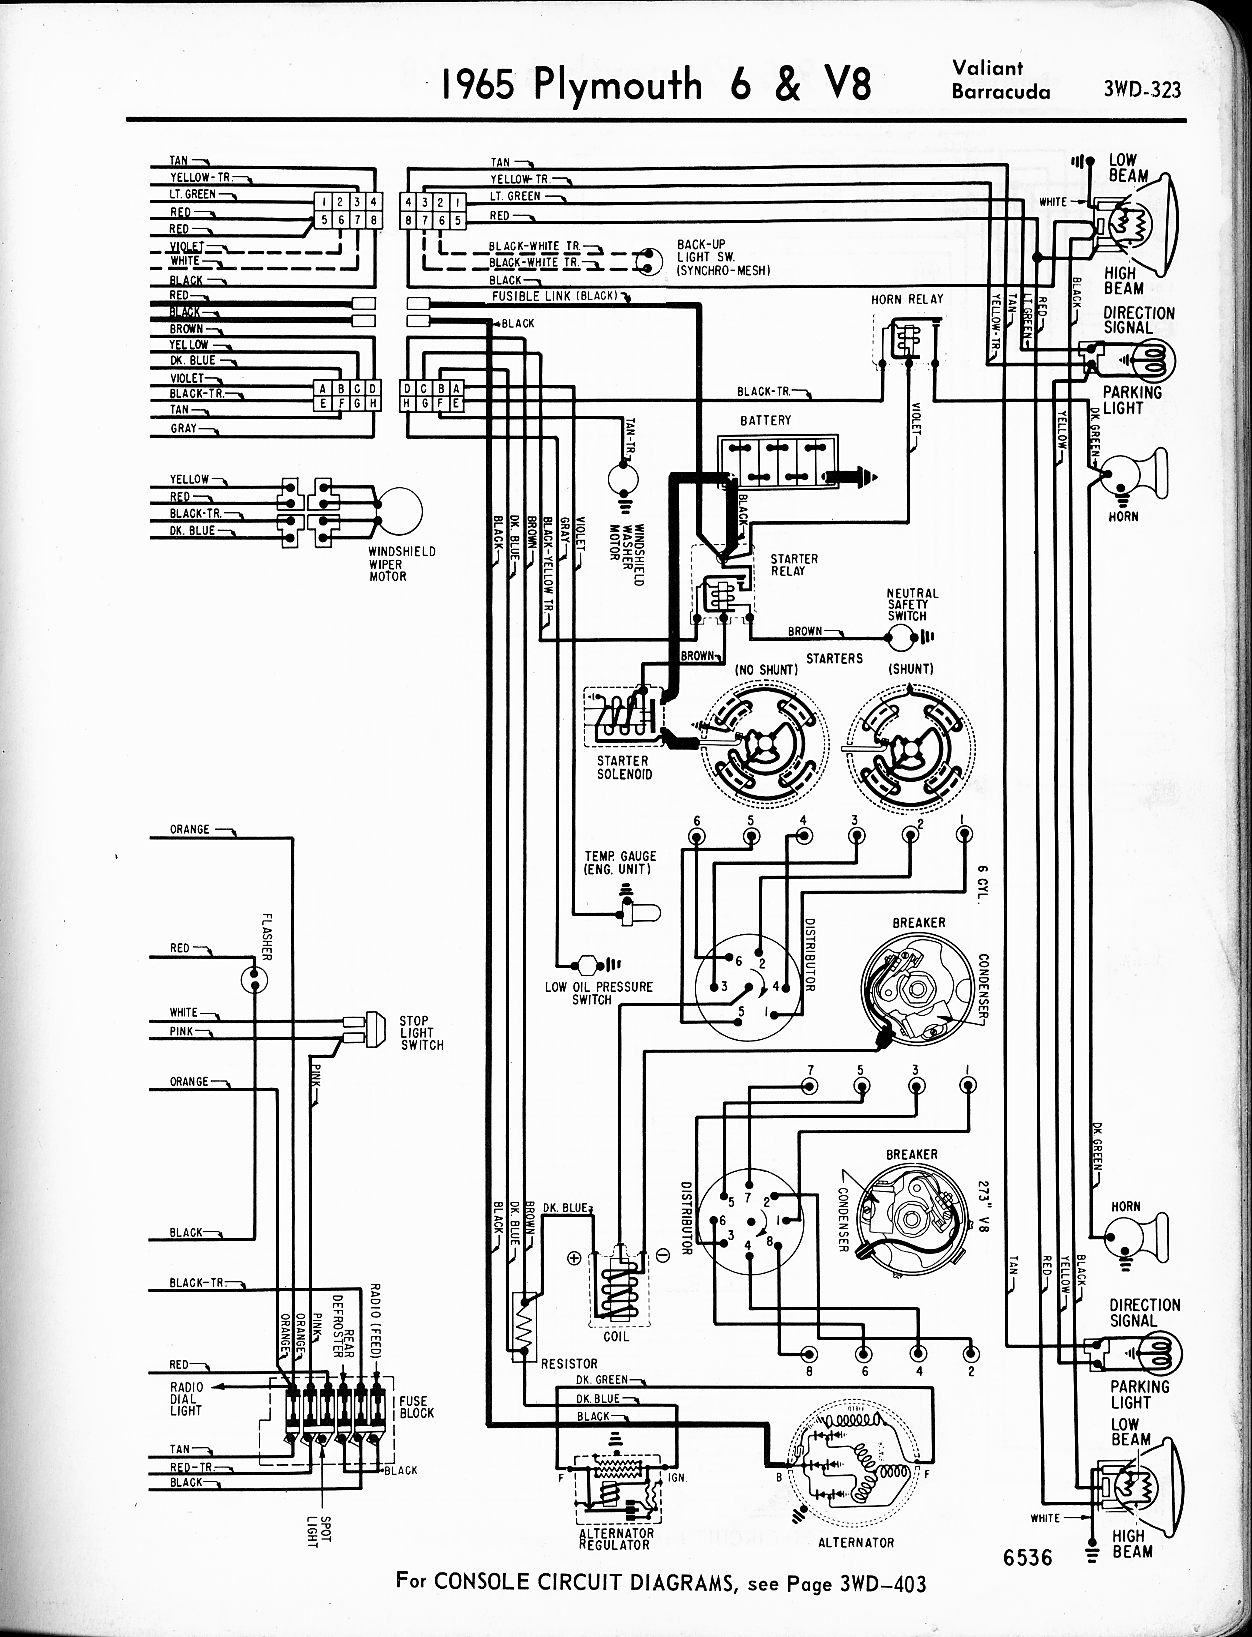 painless wiring diagram 72 cuda wiring diagram Painless 12 Circuit Wiring Diagram 1966 barracuda wiring harness 2 15 kachelofenmann de u20221965 ply barracuda wiring diagram 13 9